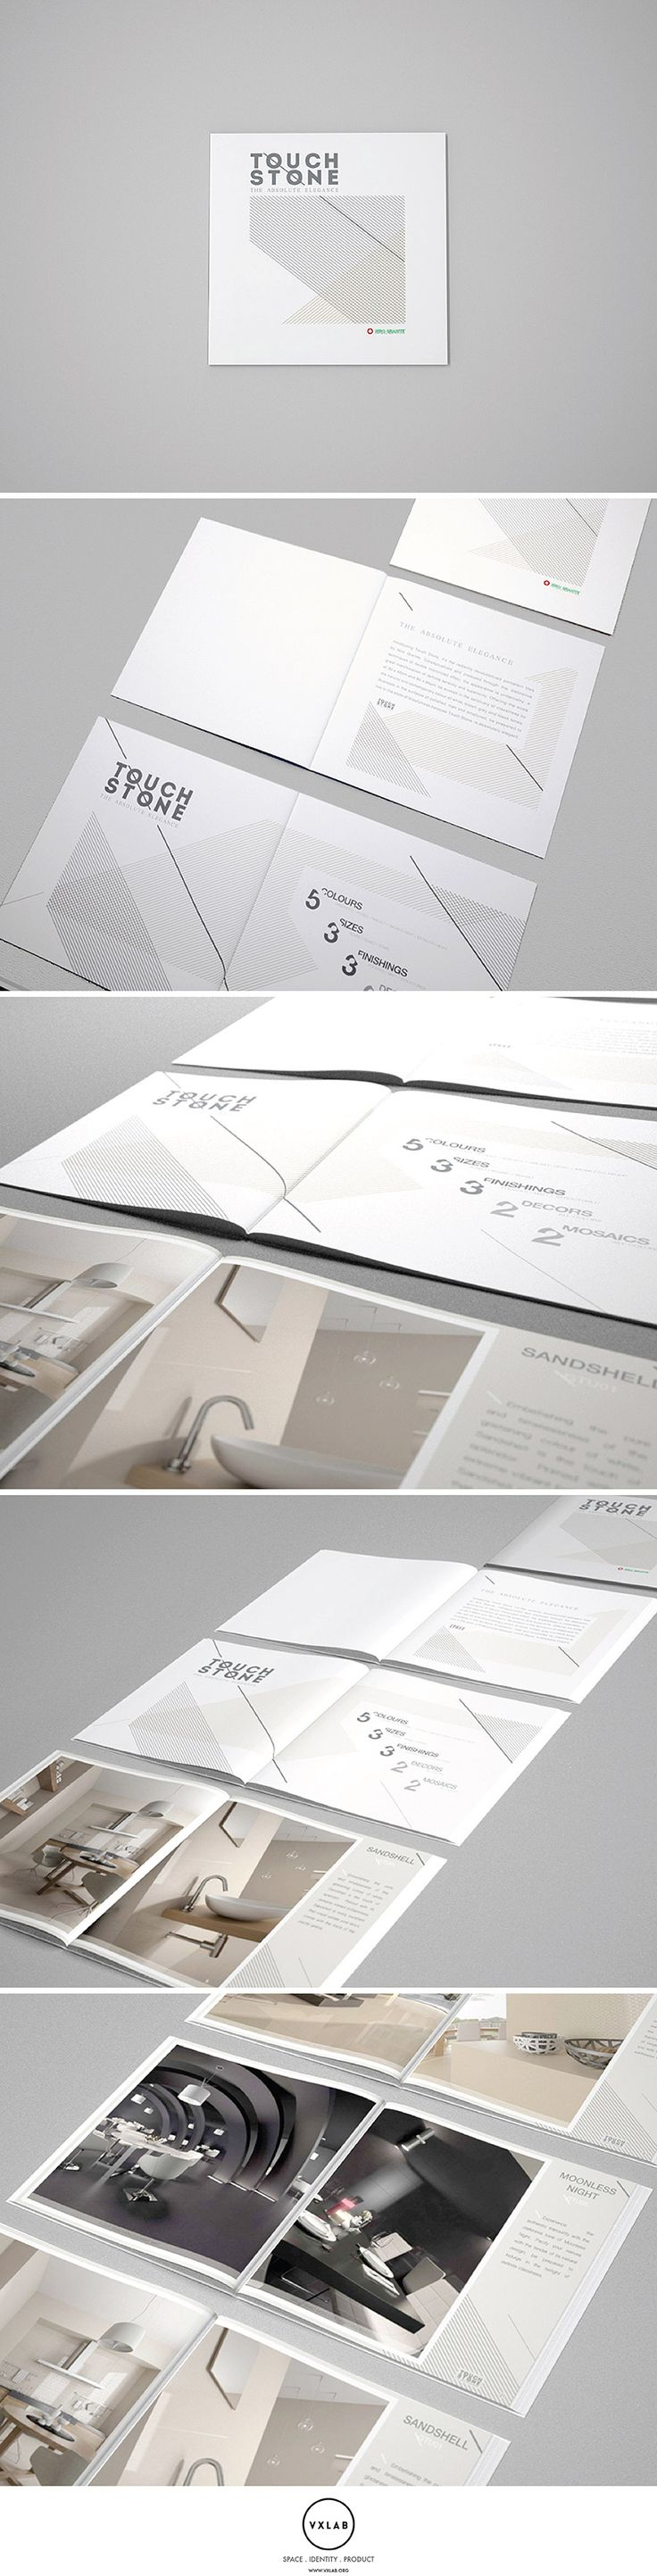 Brochure Design and Interior 3D rendering to promote Touch Stone Collection by Niro Granite. Editorial Design and 3D by VXLAB. www.vxlab.org | #stationary #corporate #design #corporatedesign #identity #branding #marketing < repinned by www.BlickeDeeler.de | Take a look at www.LogoGestaltung-Hamburg.de